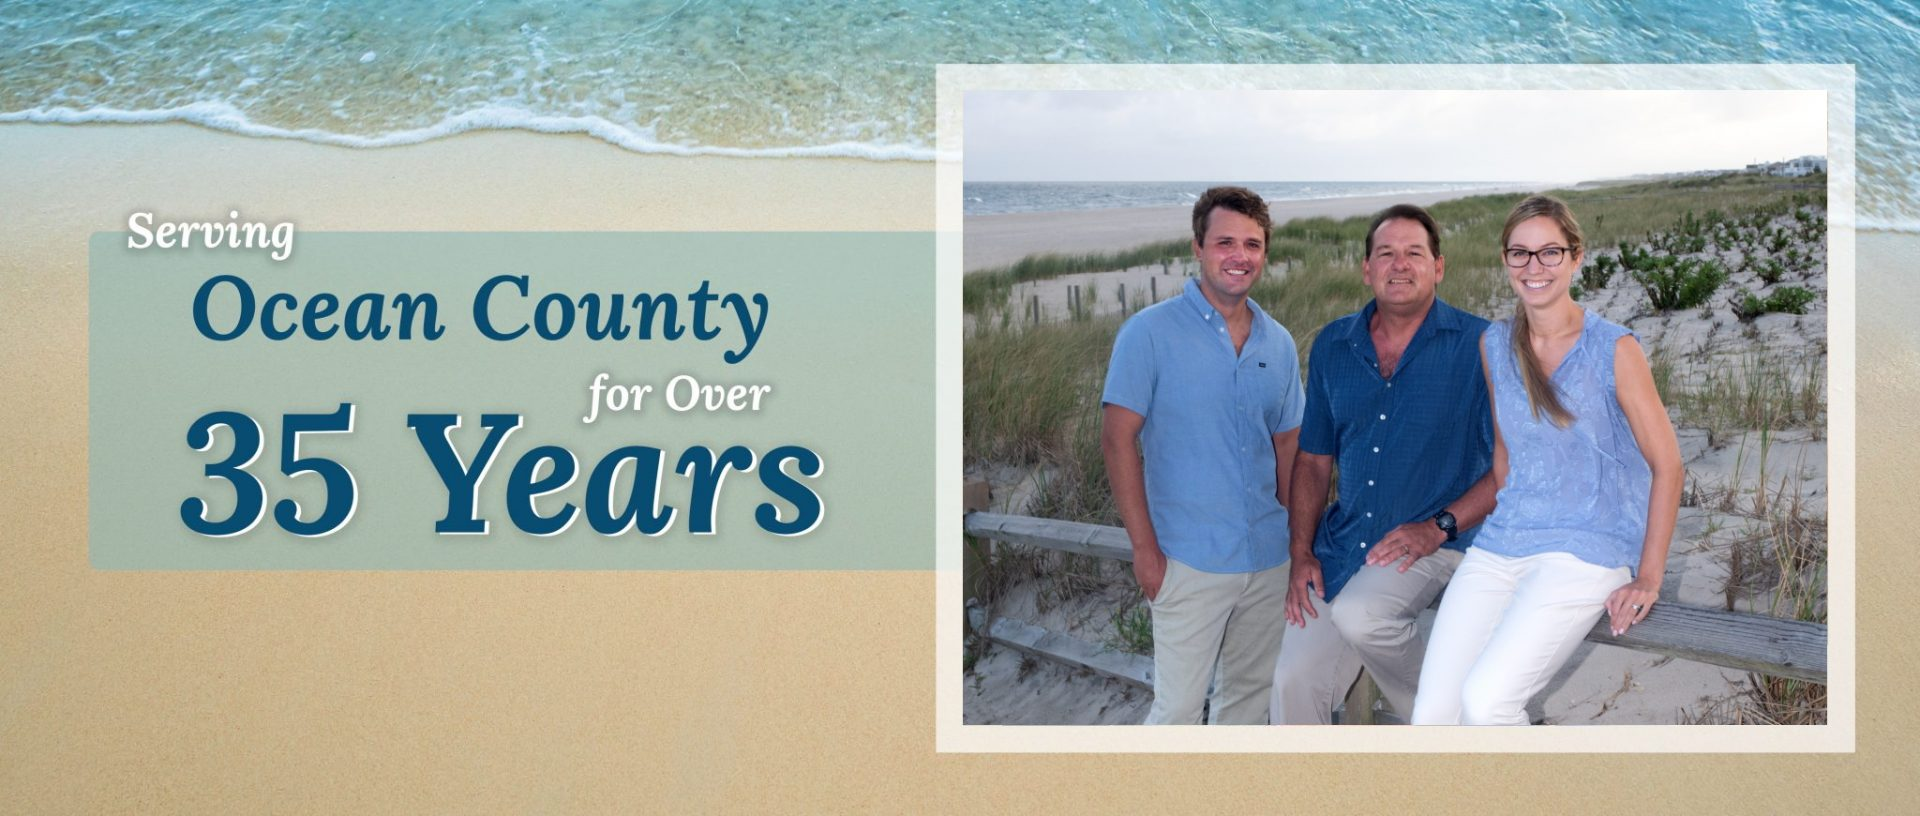 Barnegat and Manahawkin Dentist serving Ocean County for over 35 years